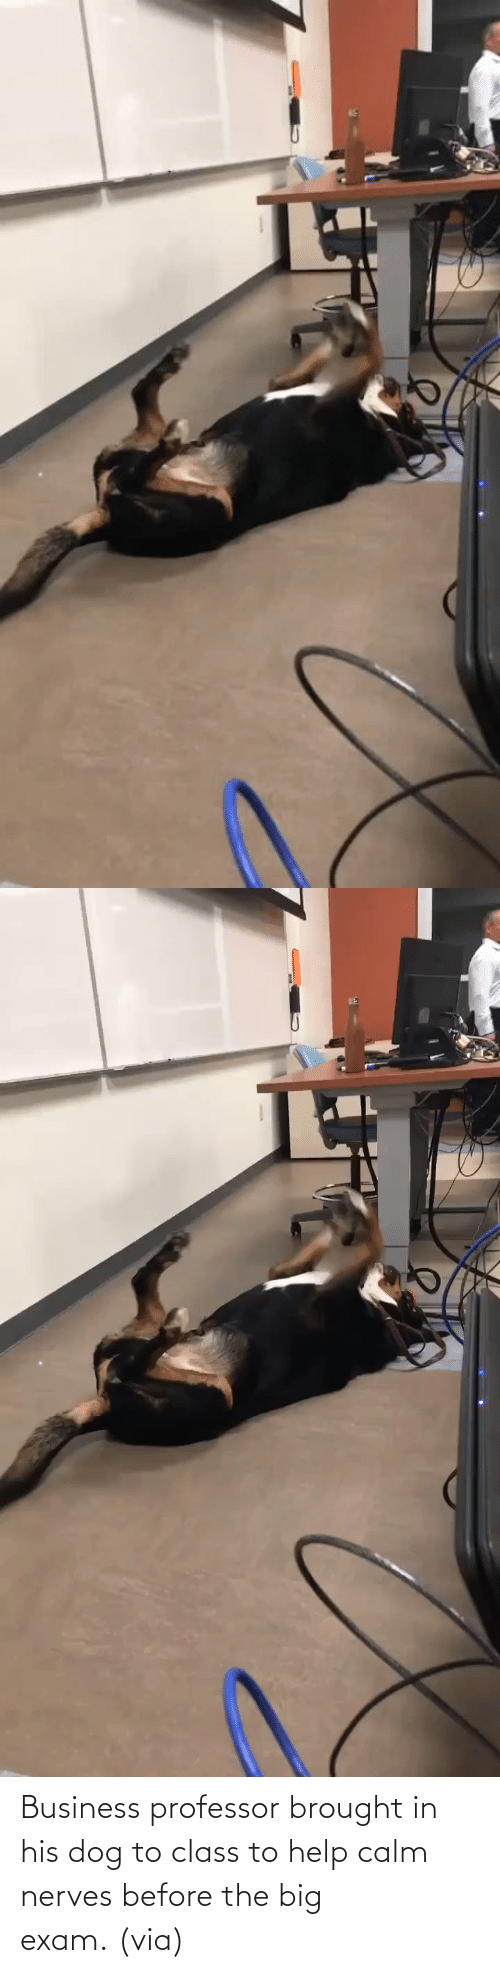 Imgur: Business professor brought in his dog to class to help calm nerves before the big exam. (via)